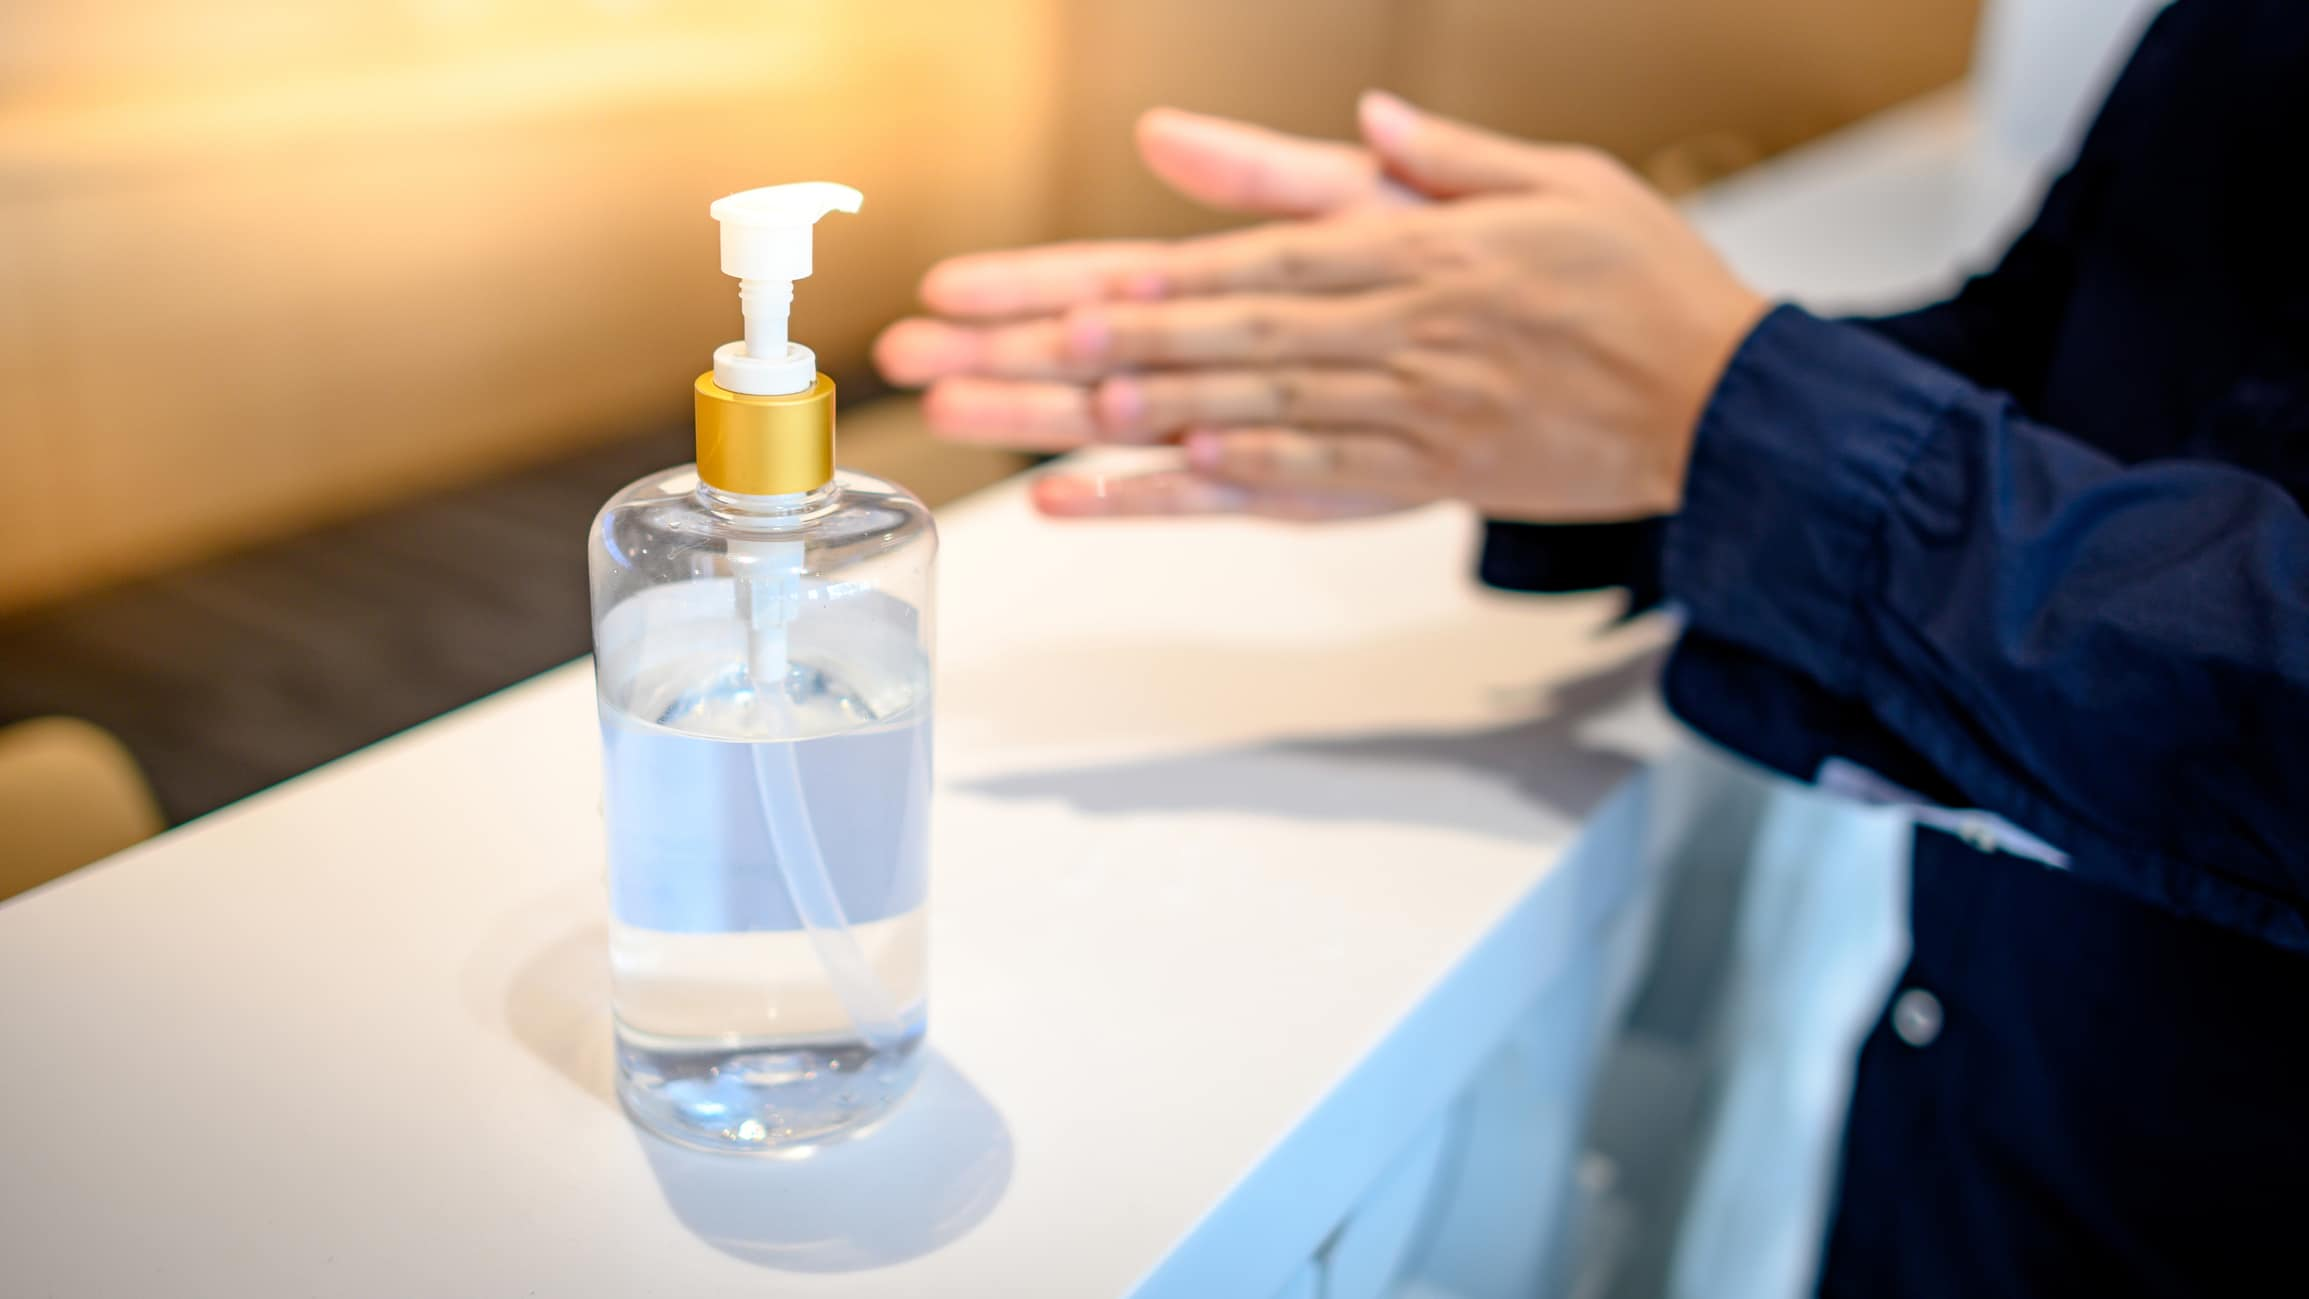 Concierge washing hands with alcohol sanitizer to prevent spreading of COVID-19